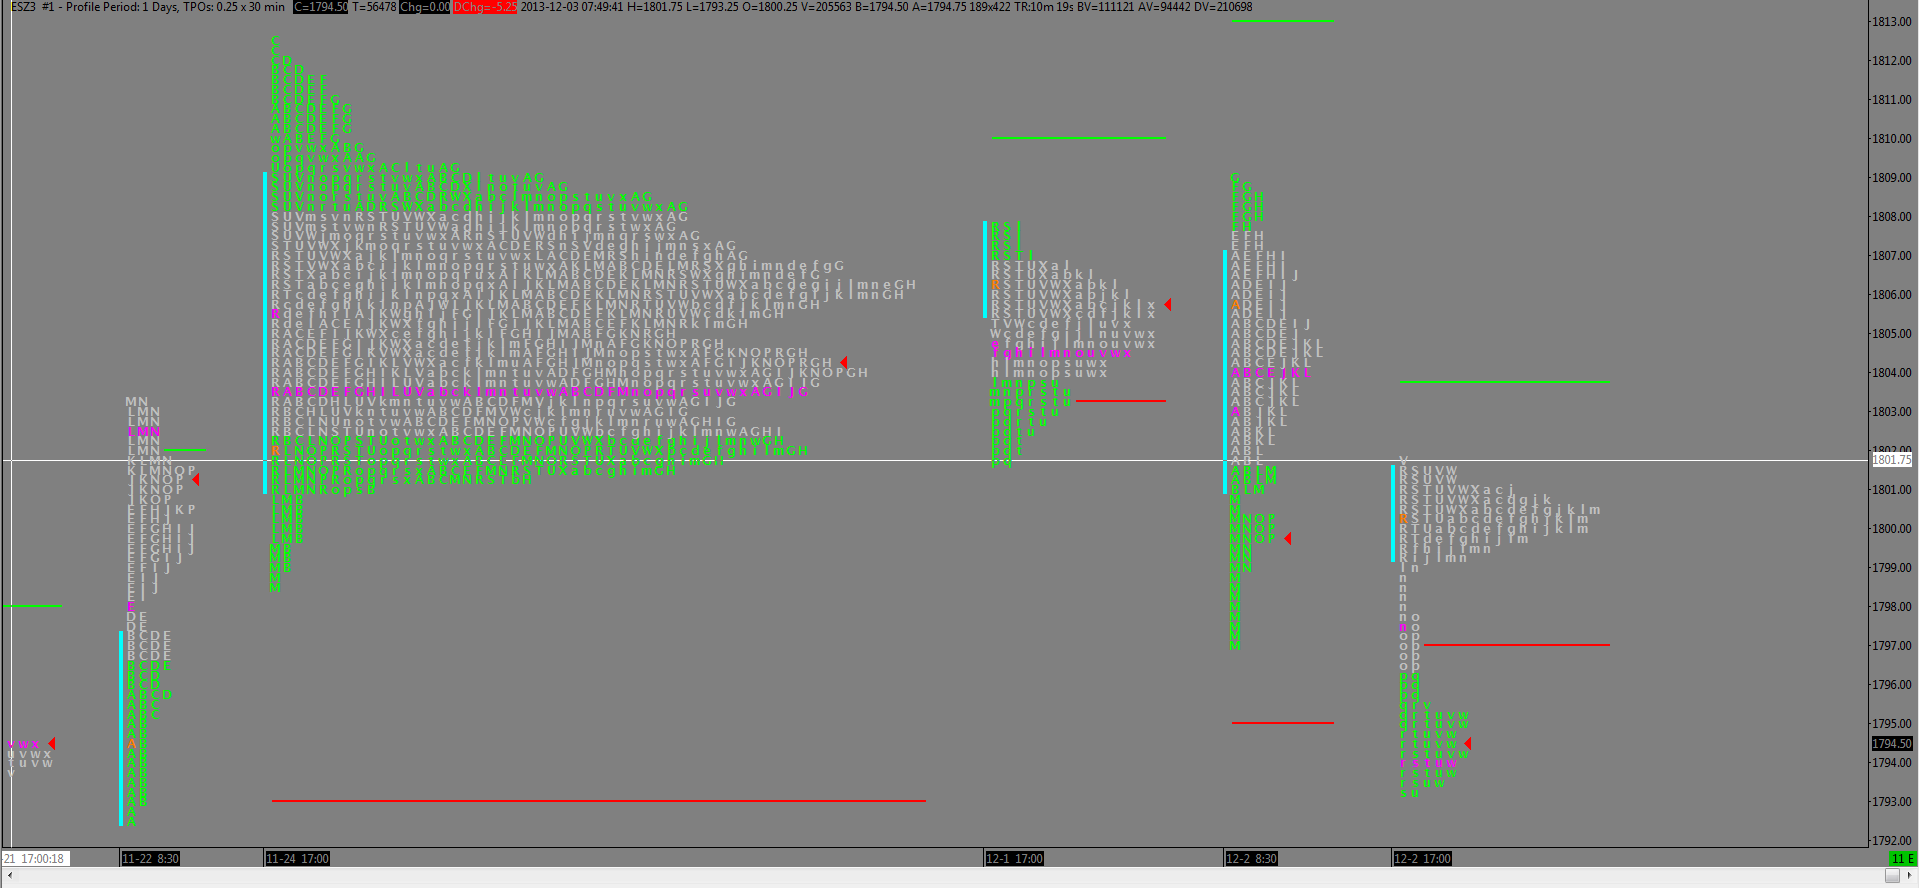 es weekly profile